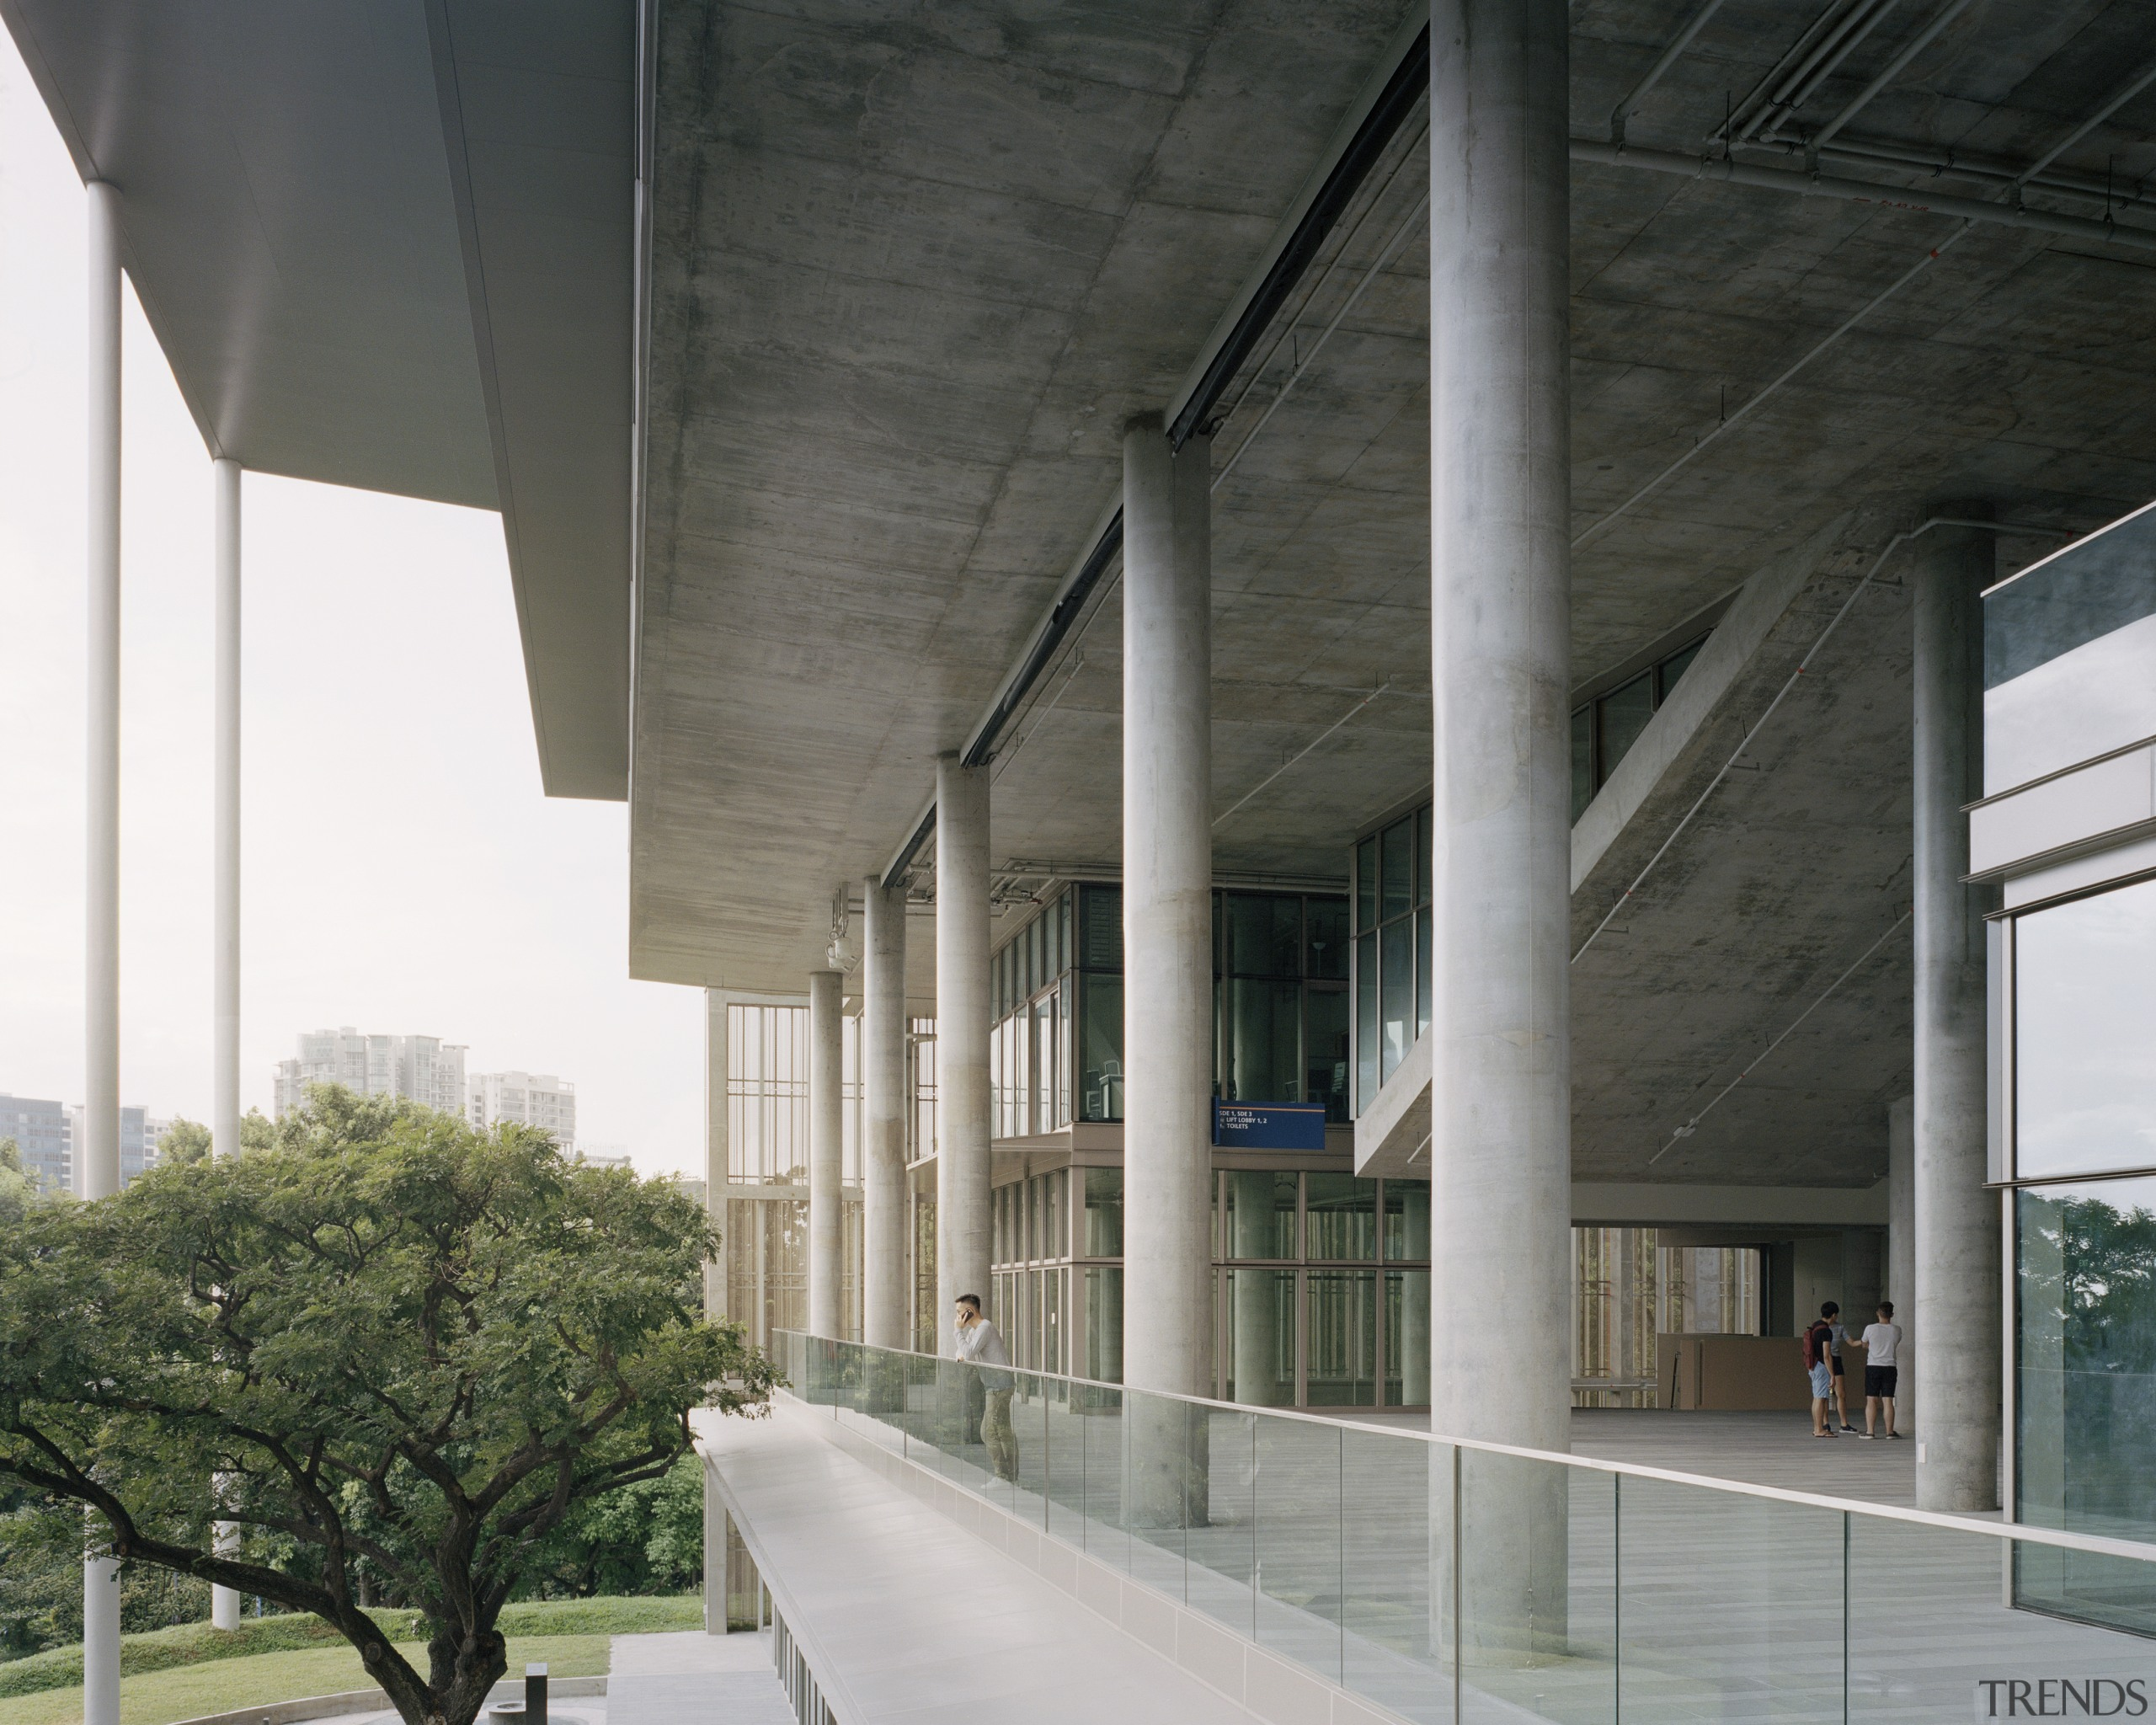 Modern university architecture studio includes elements of vernacular architecture, brutalist architecture, building, concrete, facade, glass, material property, reinforced concrete, School of Design Environment